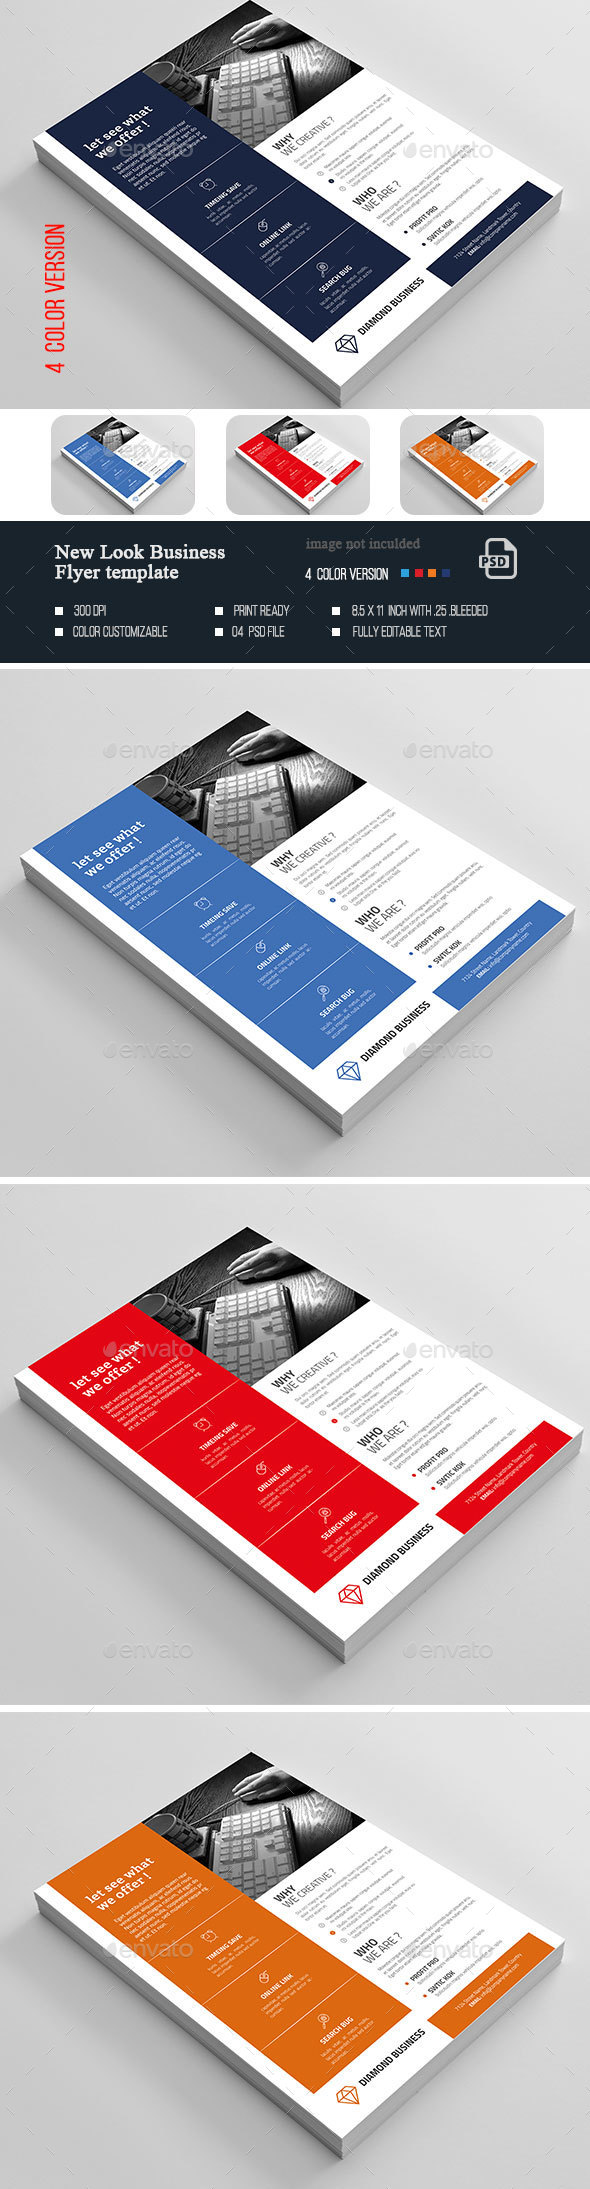 New Look Business Flyer - Flyers Print Templates